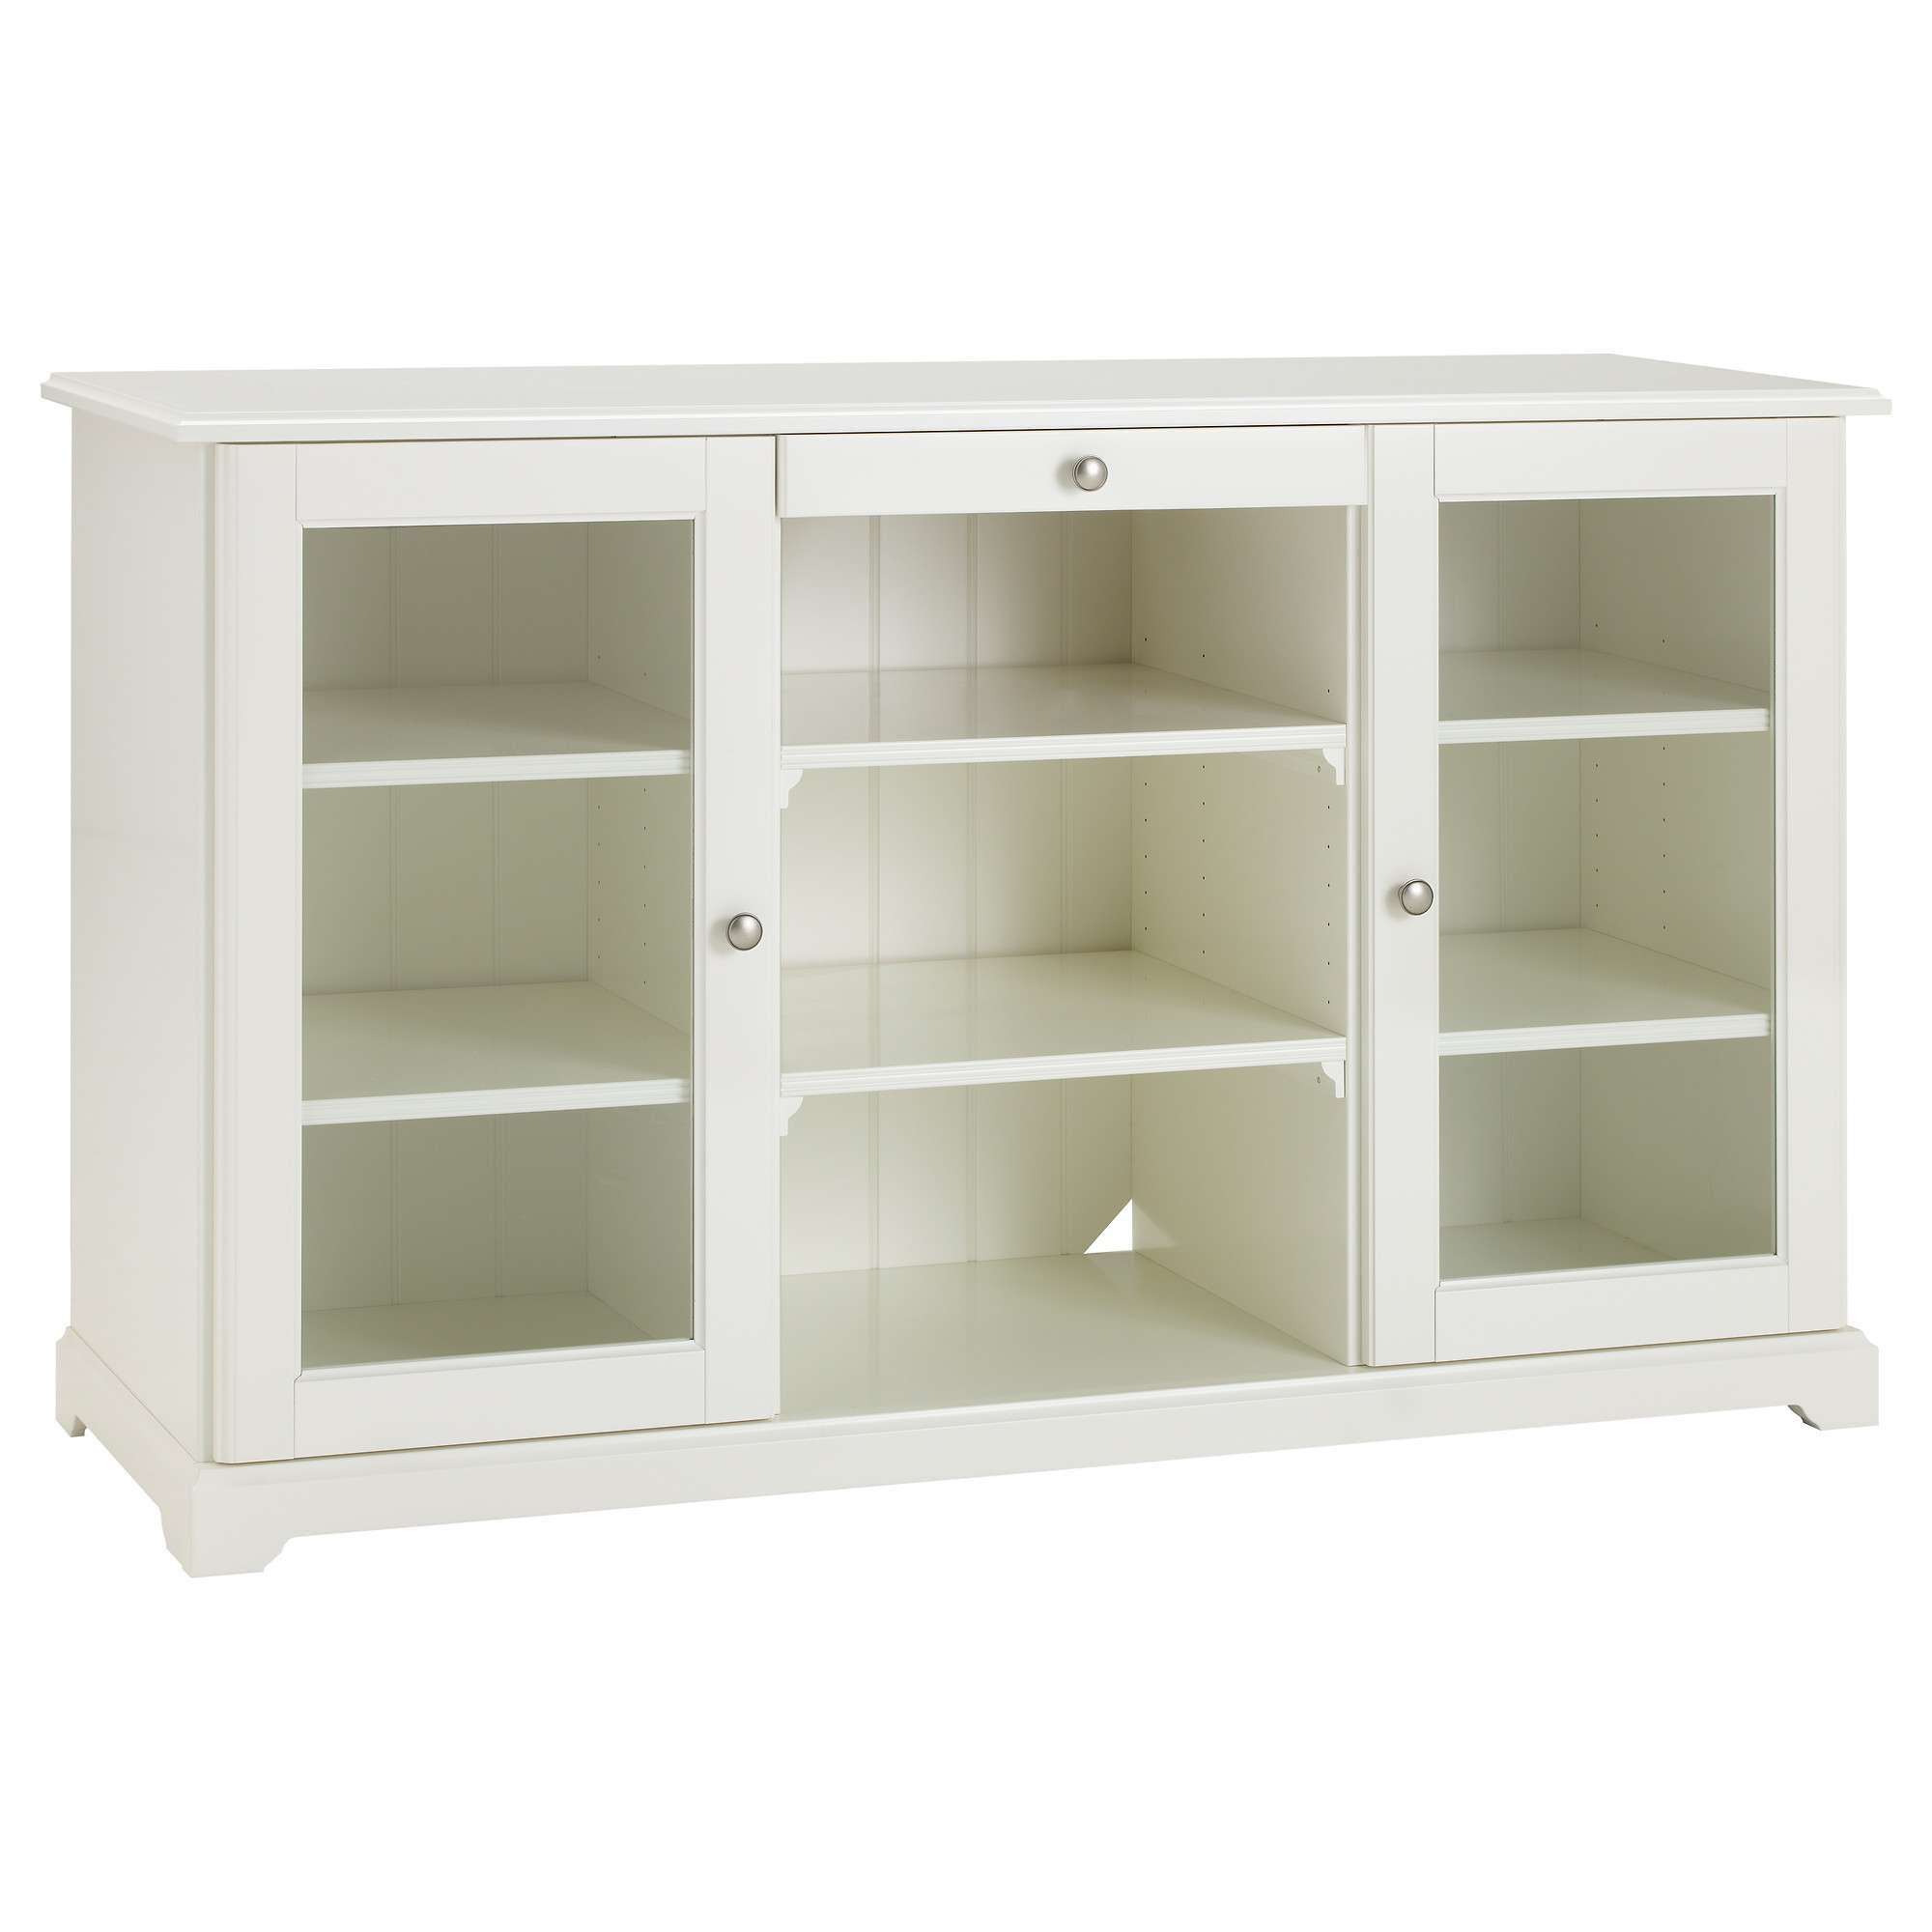 Liatorp Sideboard White 145X87 Cm – Ikea In Ikea Hemnes Sideboards (View 14 of 20)